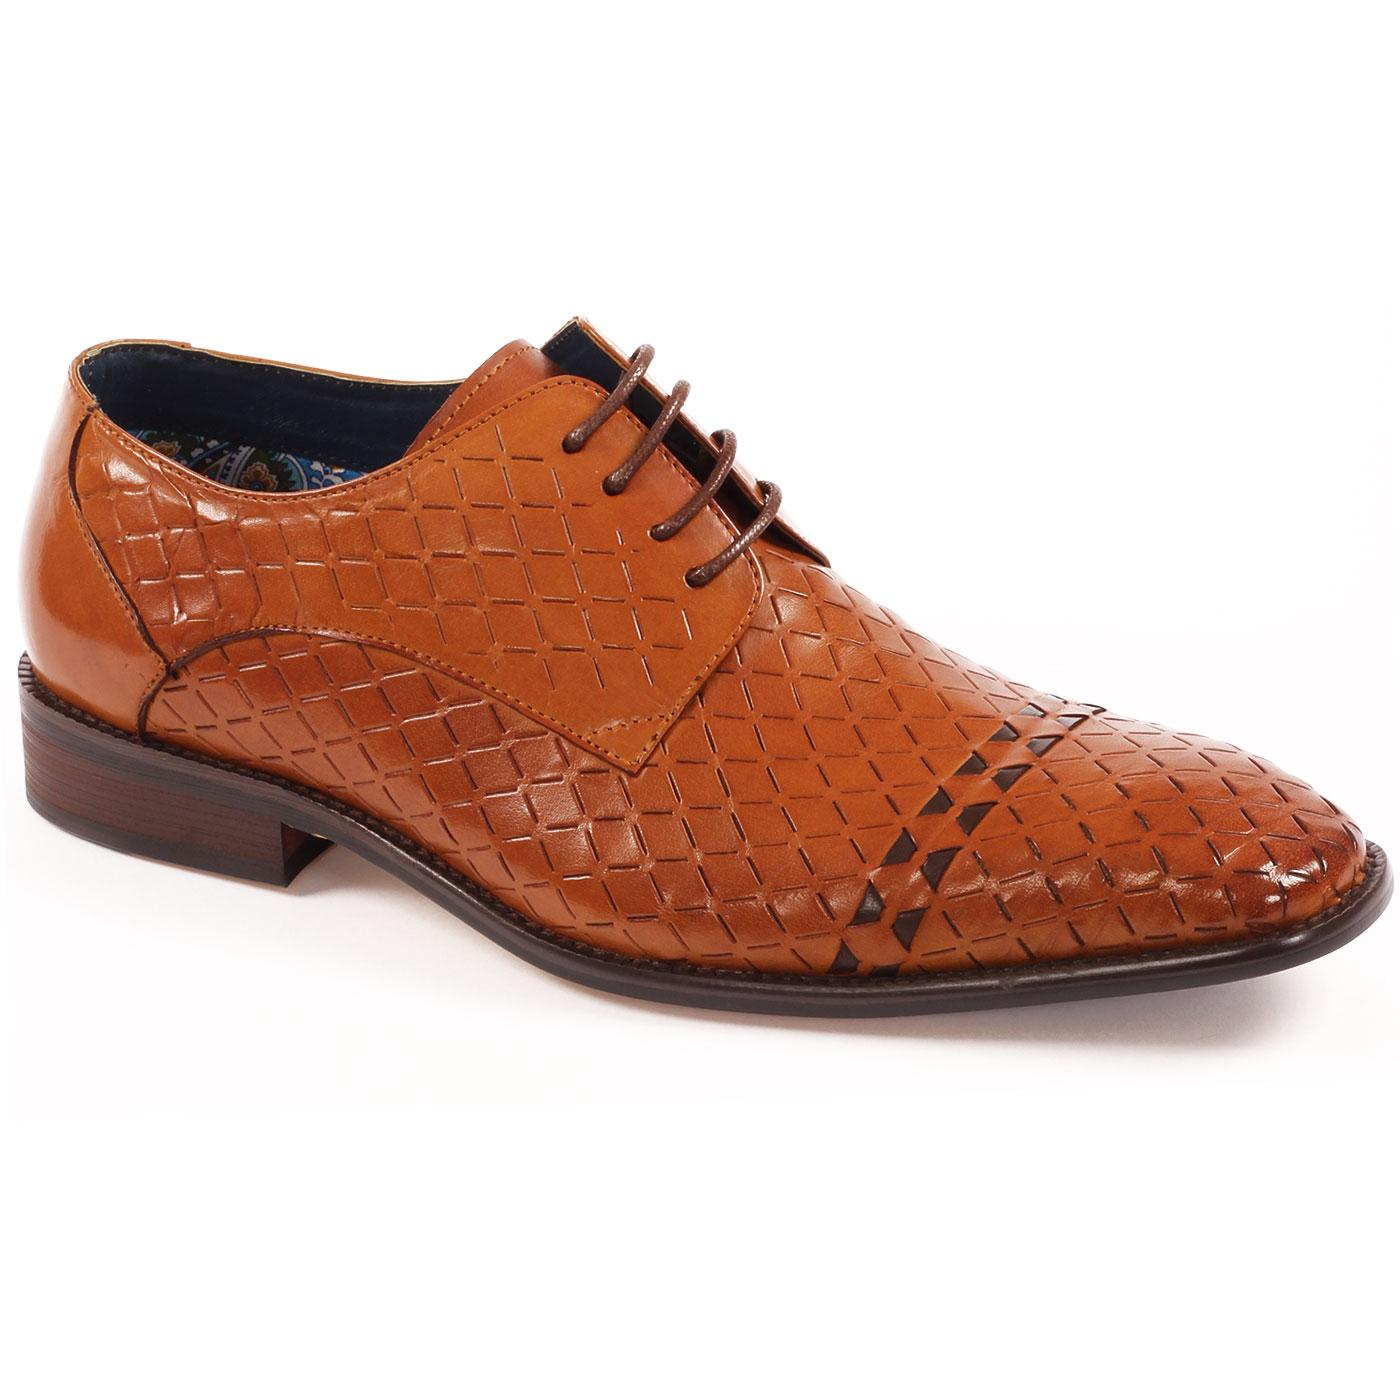 Enoch PAOLO VANDINI Diamond Weave Derby Shoes TAN